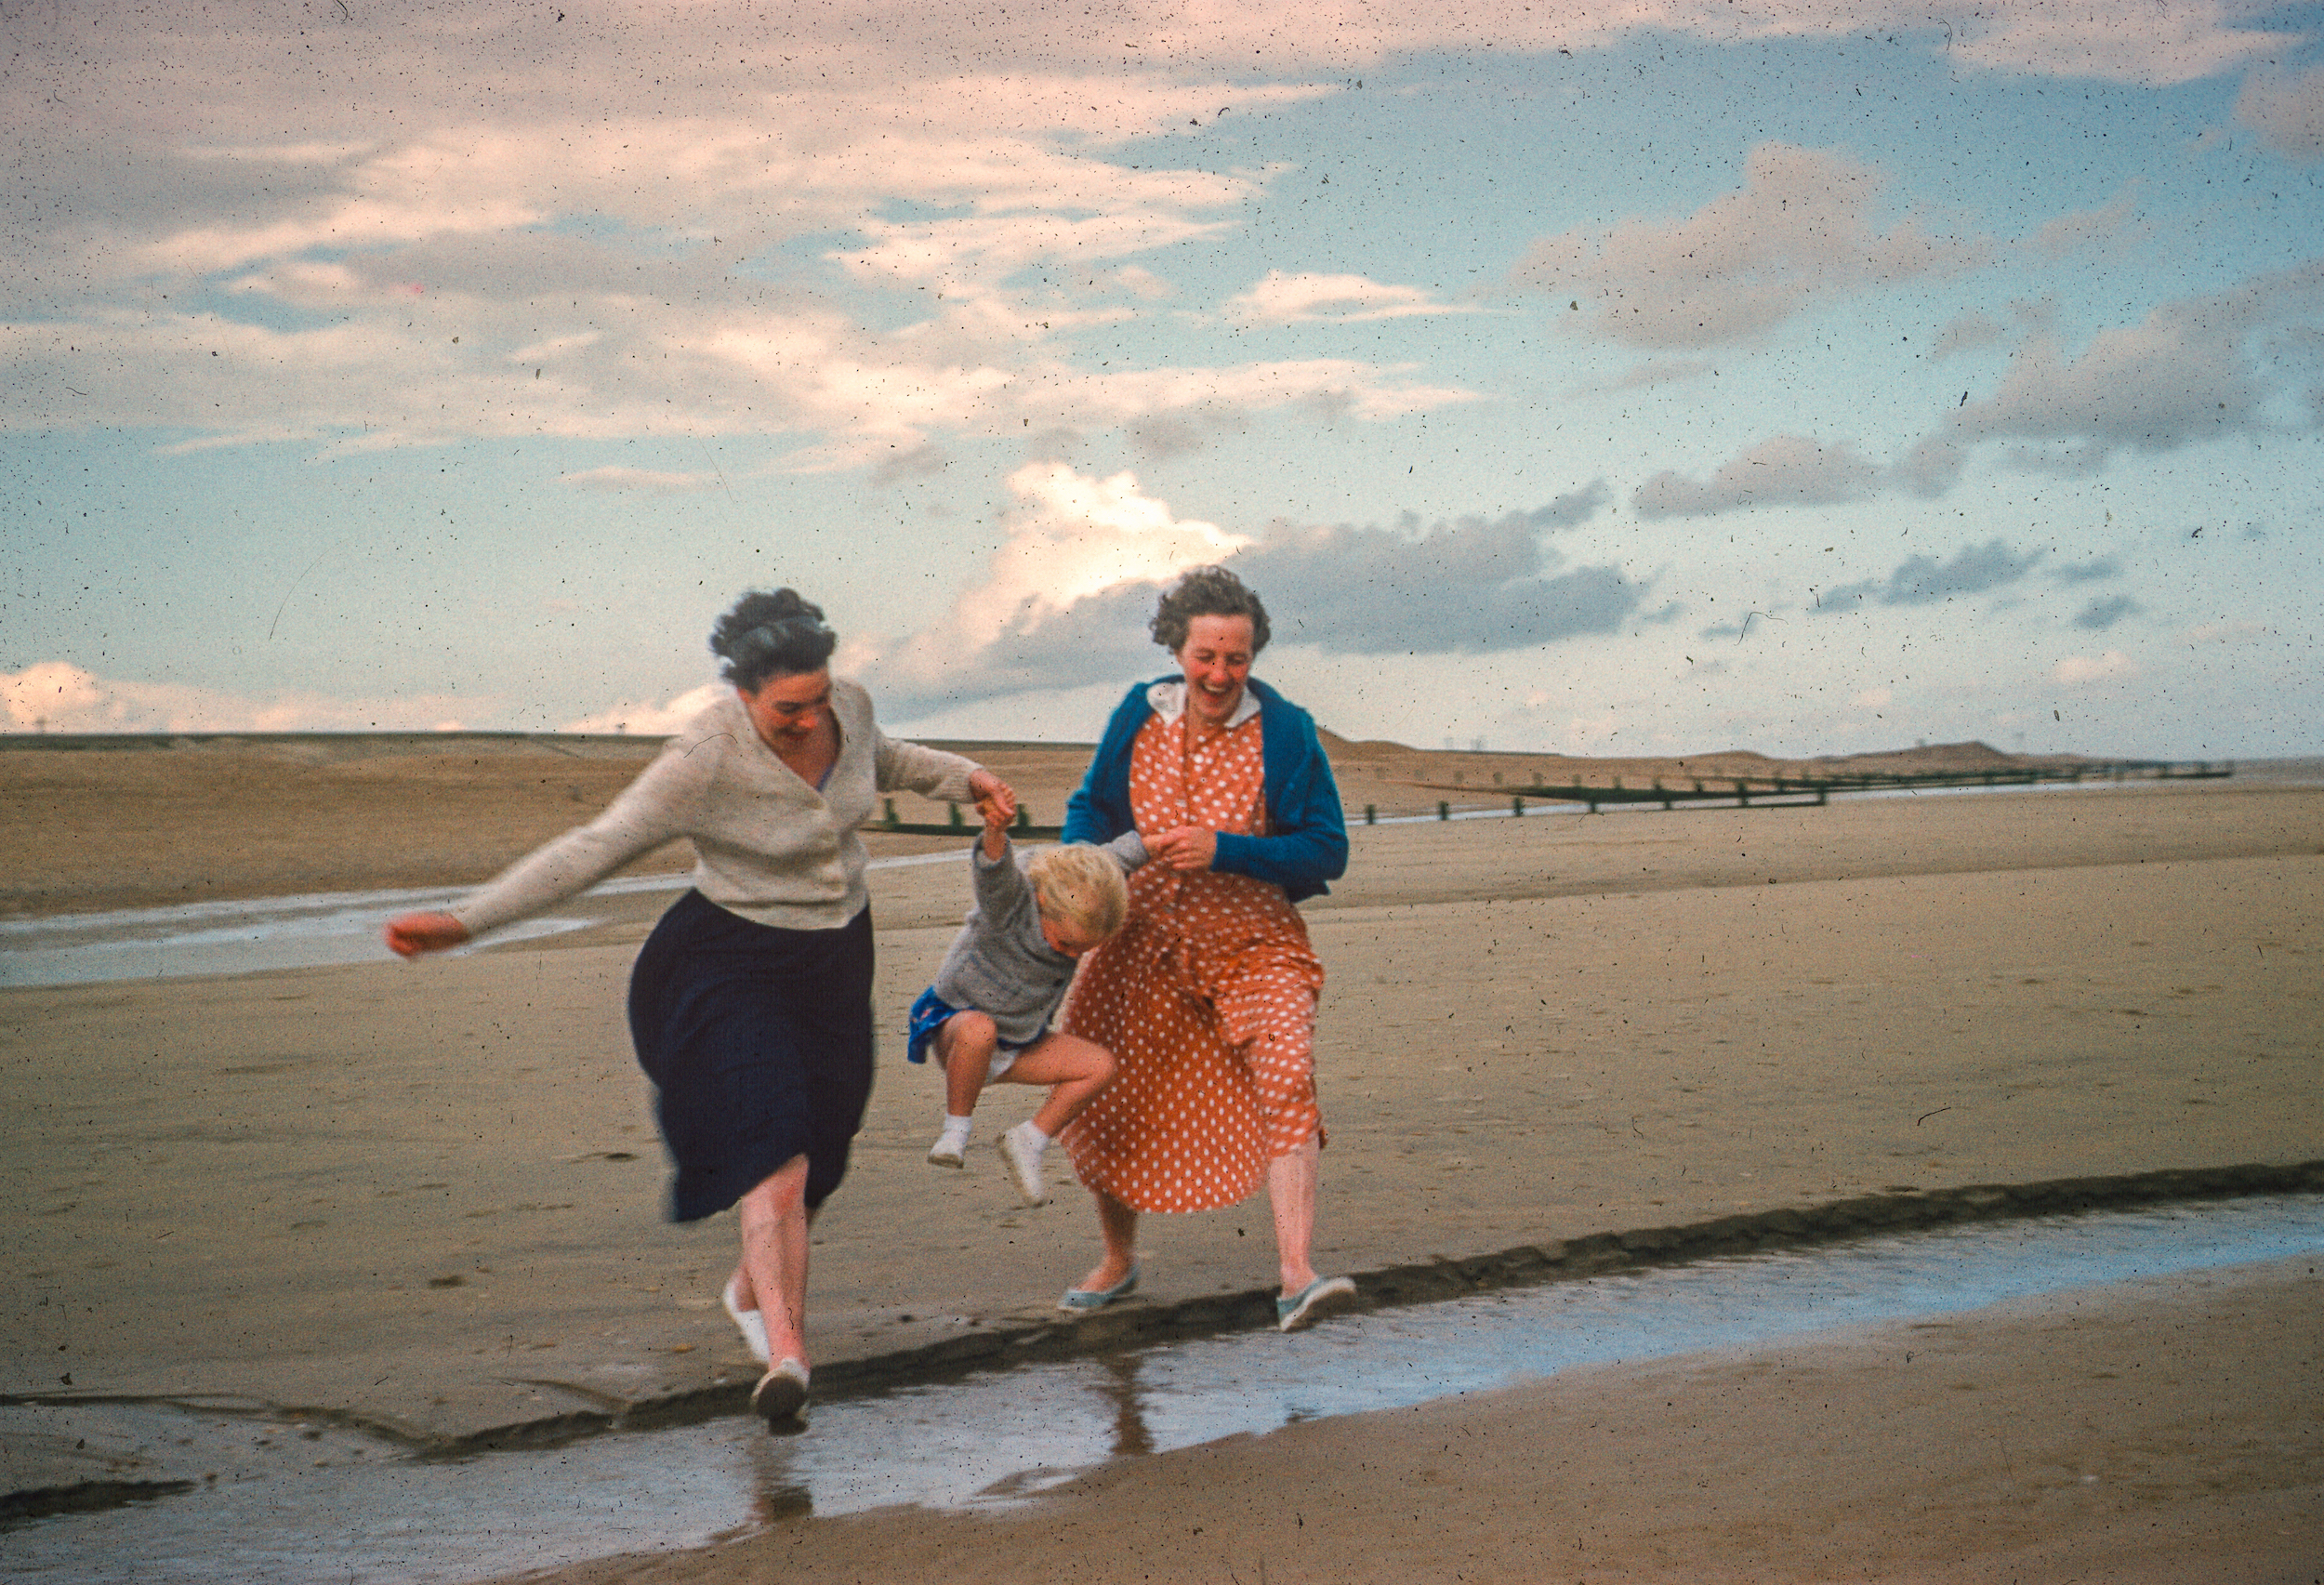 Leaping - Location Unknown - Aug. 1960